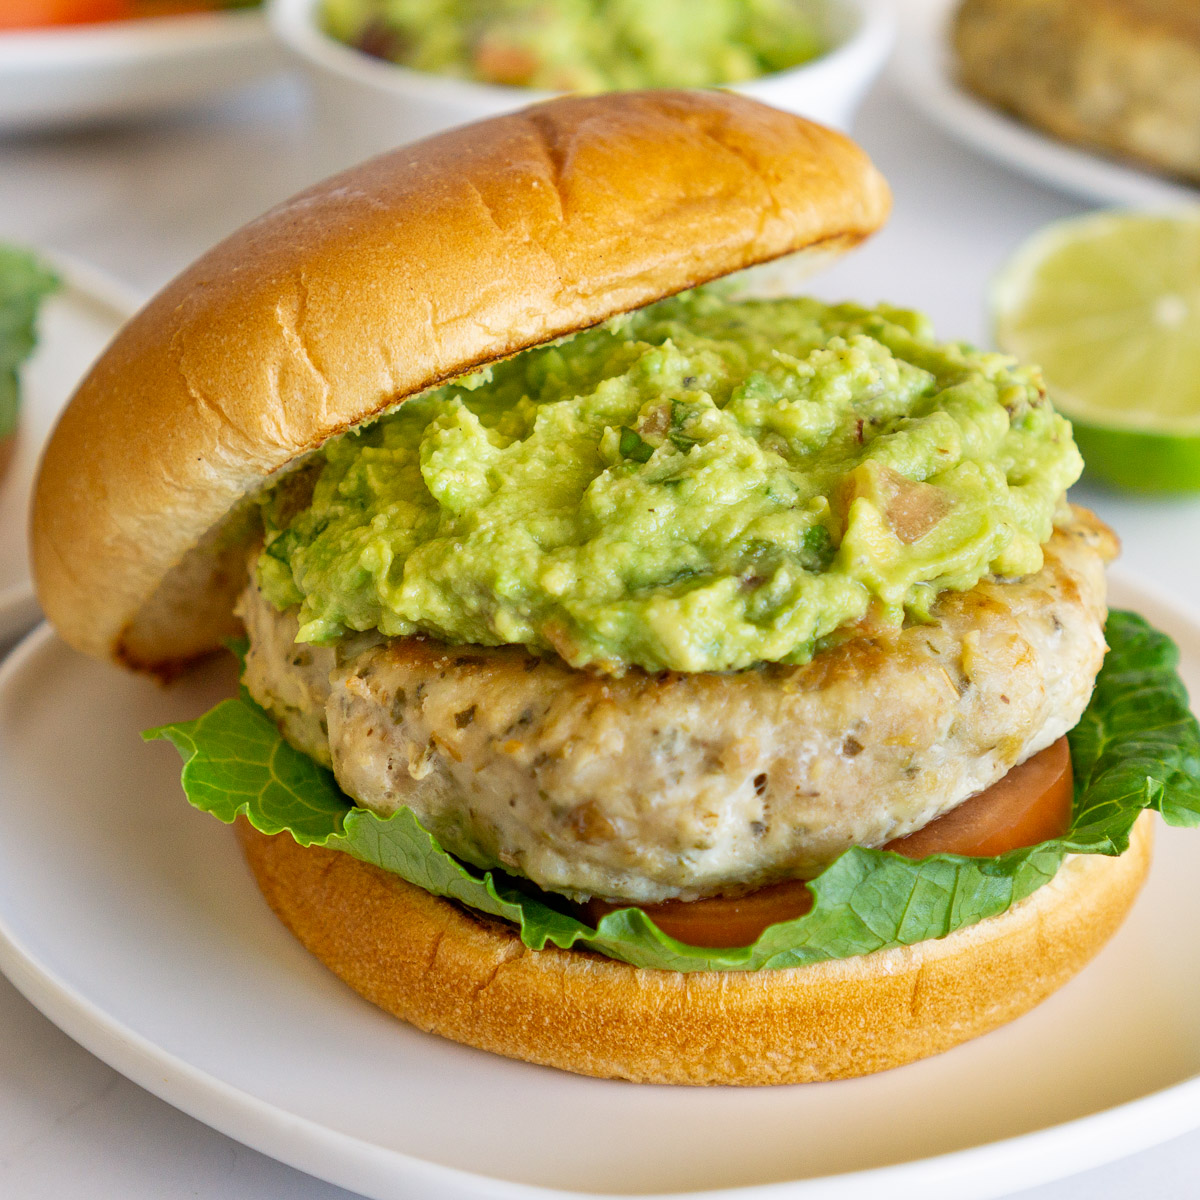 chicken burger with guacamole on a plate